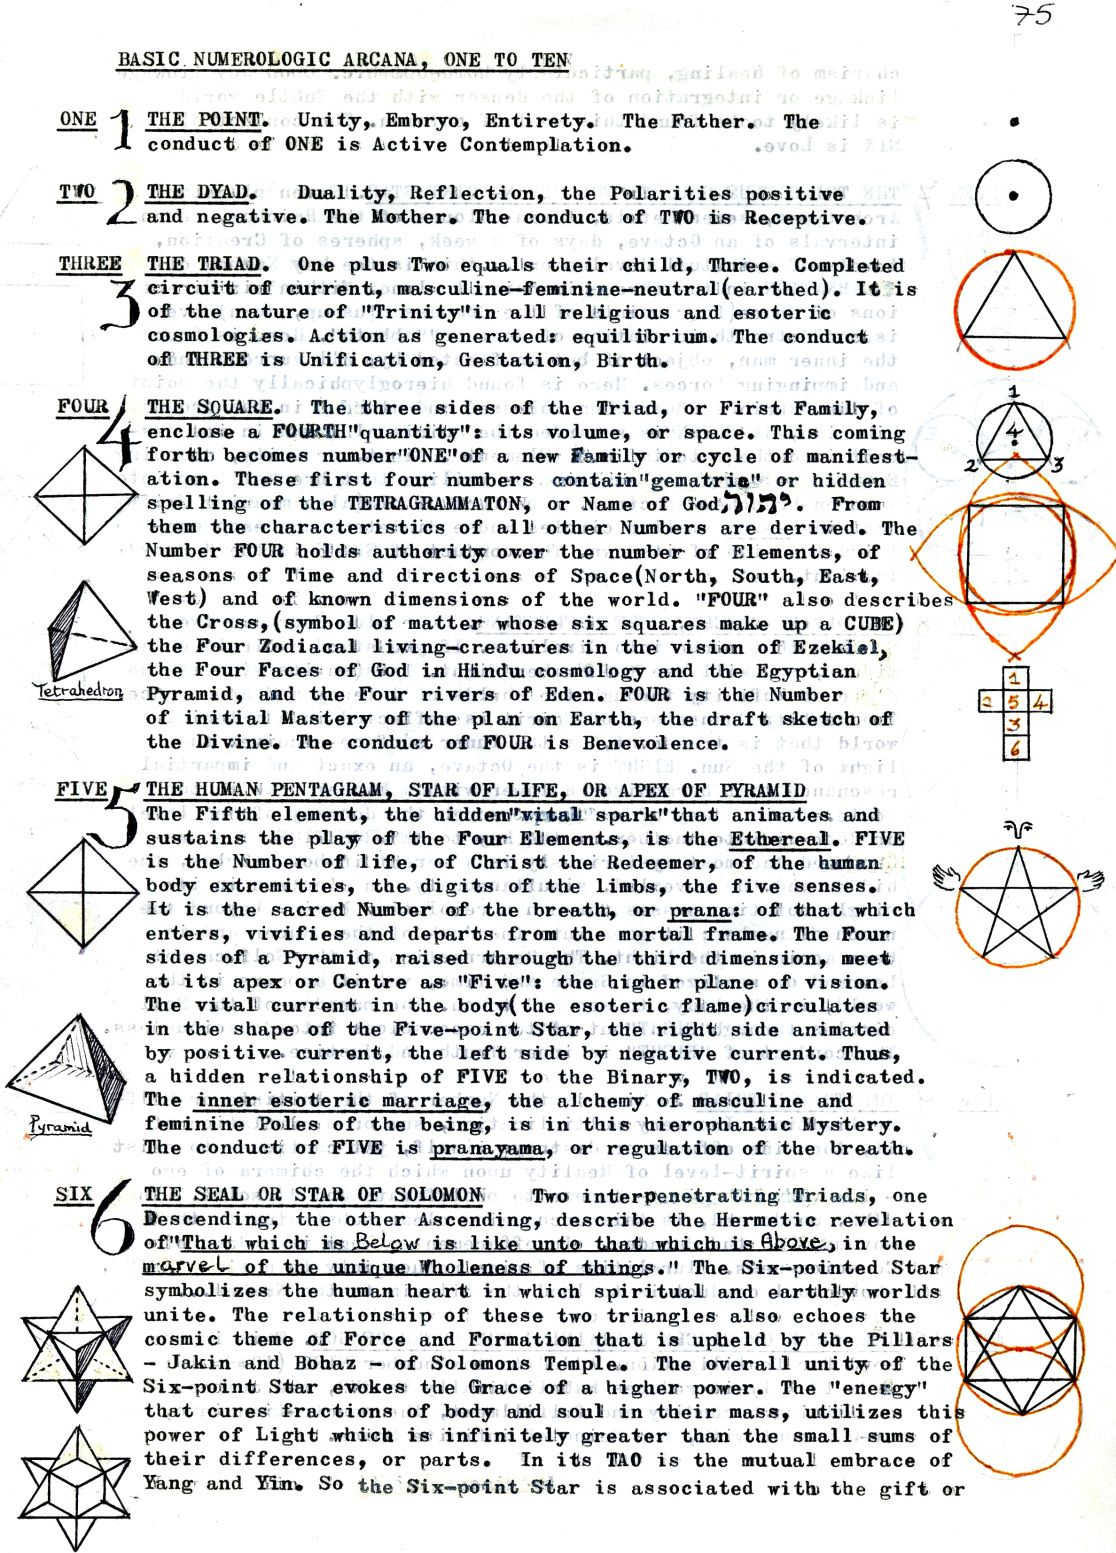 Numerology And Platonic Forms